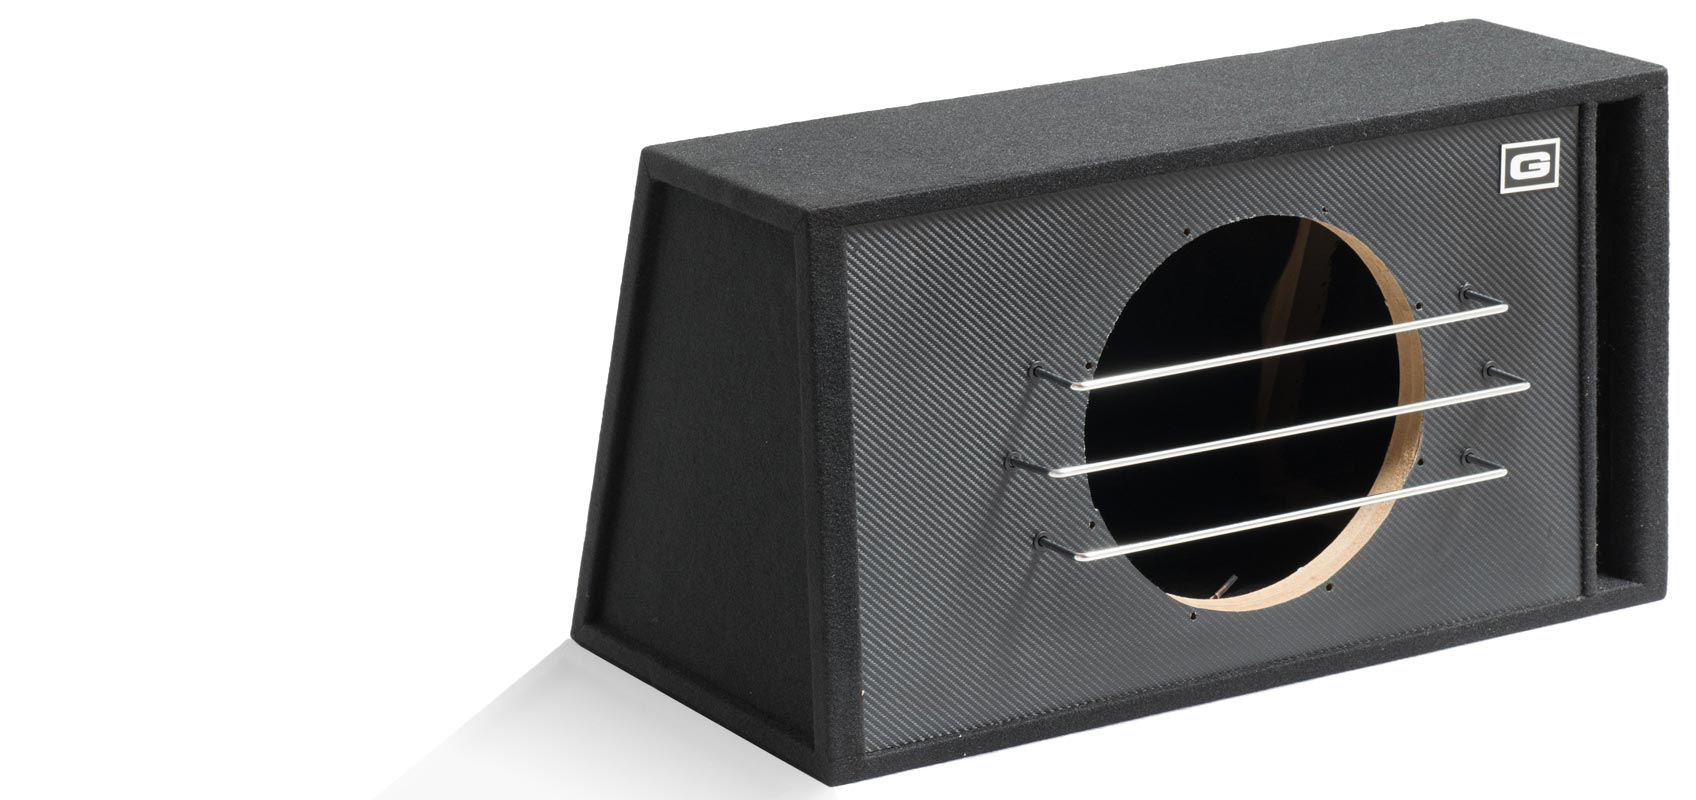 Casse acustiche box per sub accessori rg sound store for 2 box auto con officina e soppalco